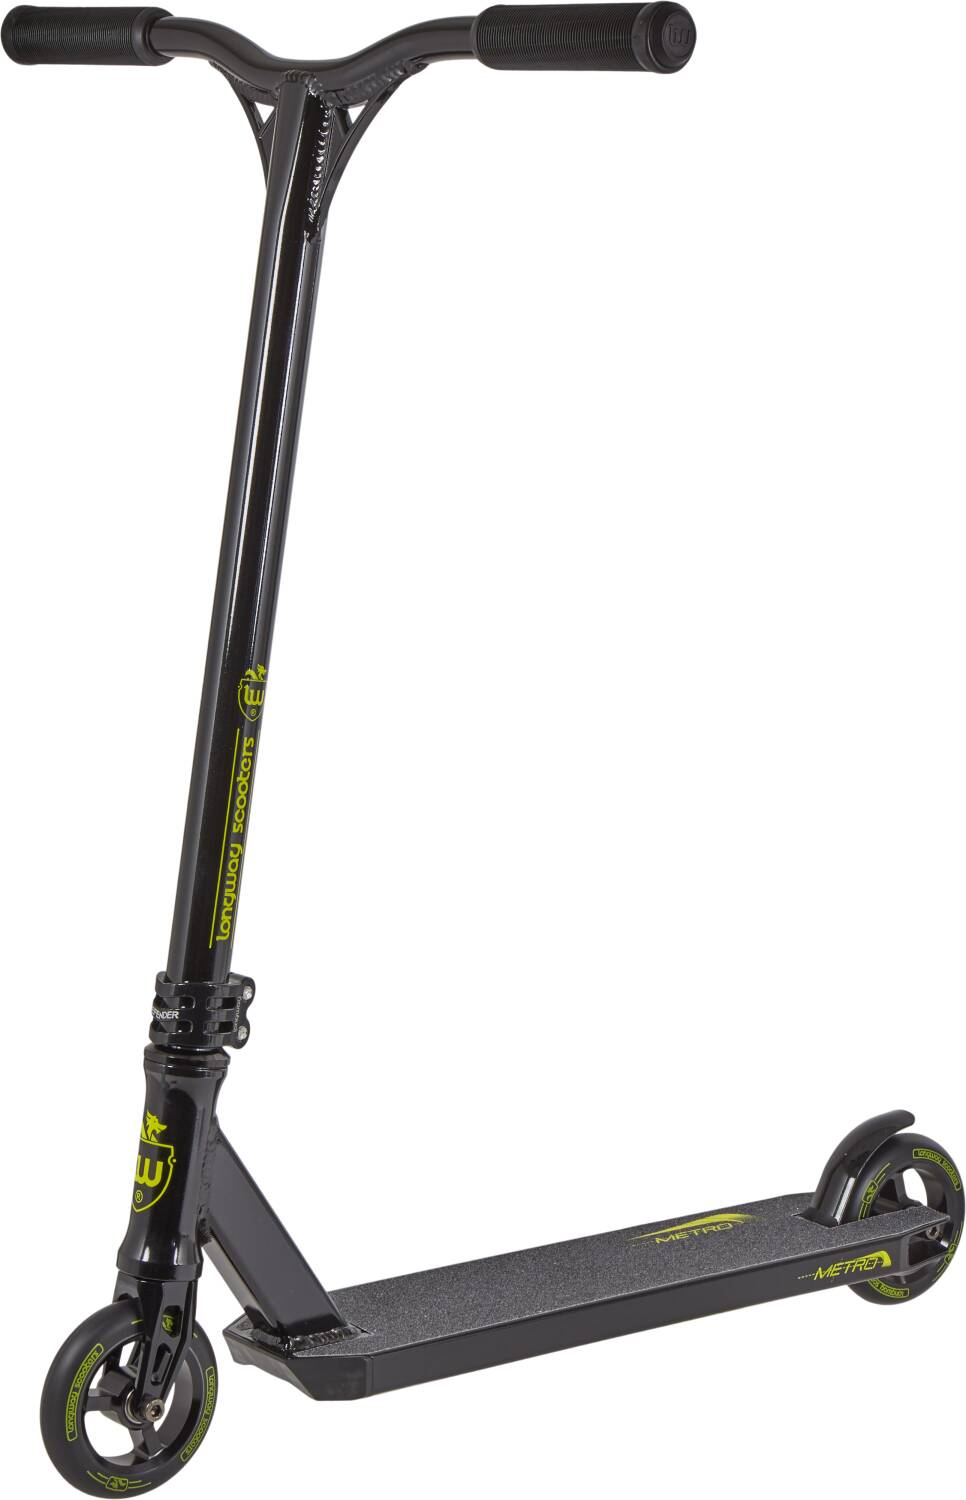 Longway Metro 2K19 Pro Scooter - Black/Yellow